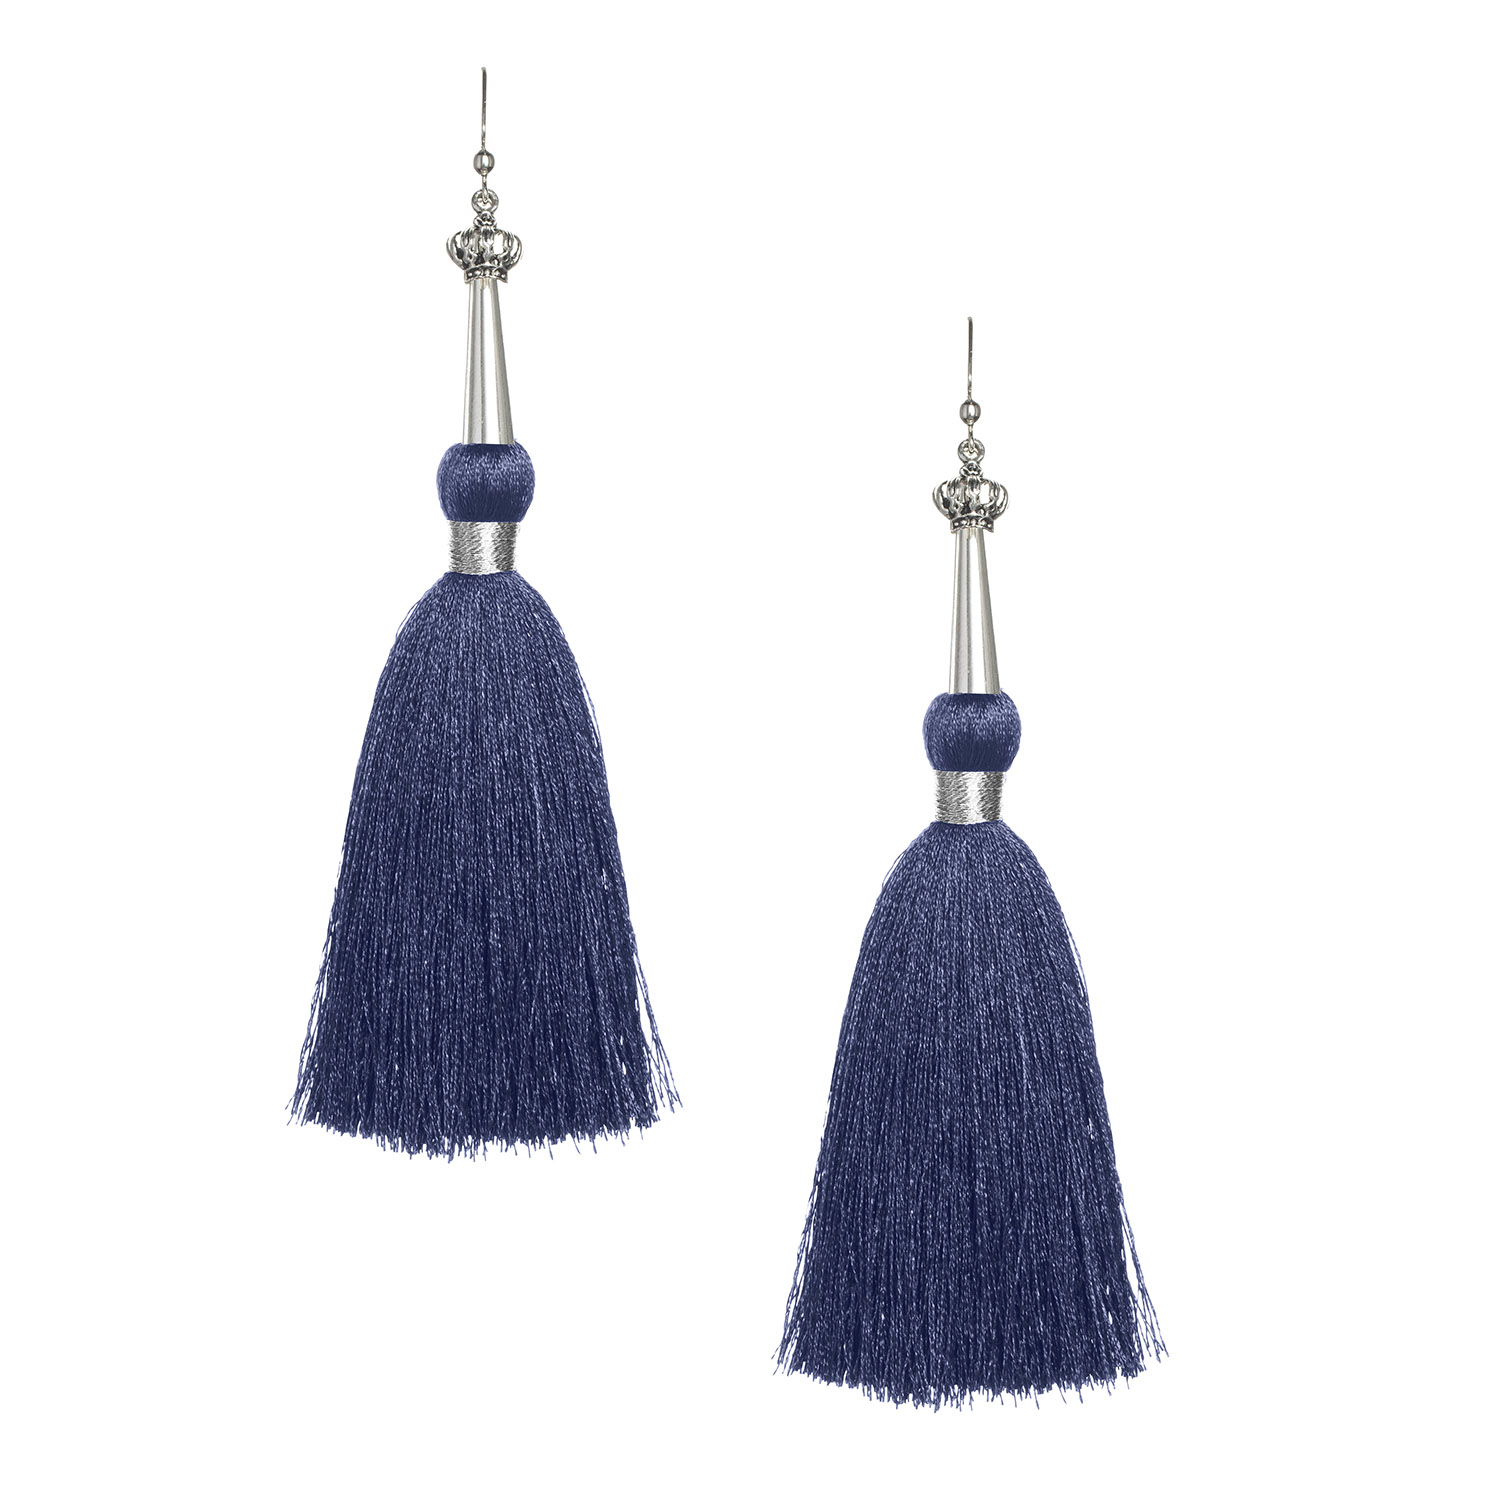 shop diamond bead wonders upscale of product subsampling false scale tassel black fahmy azza crop nature tassle chandelier earrings